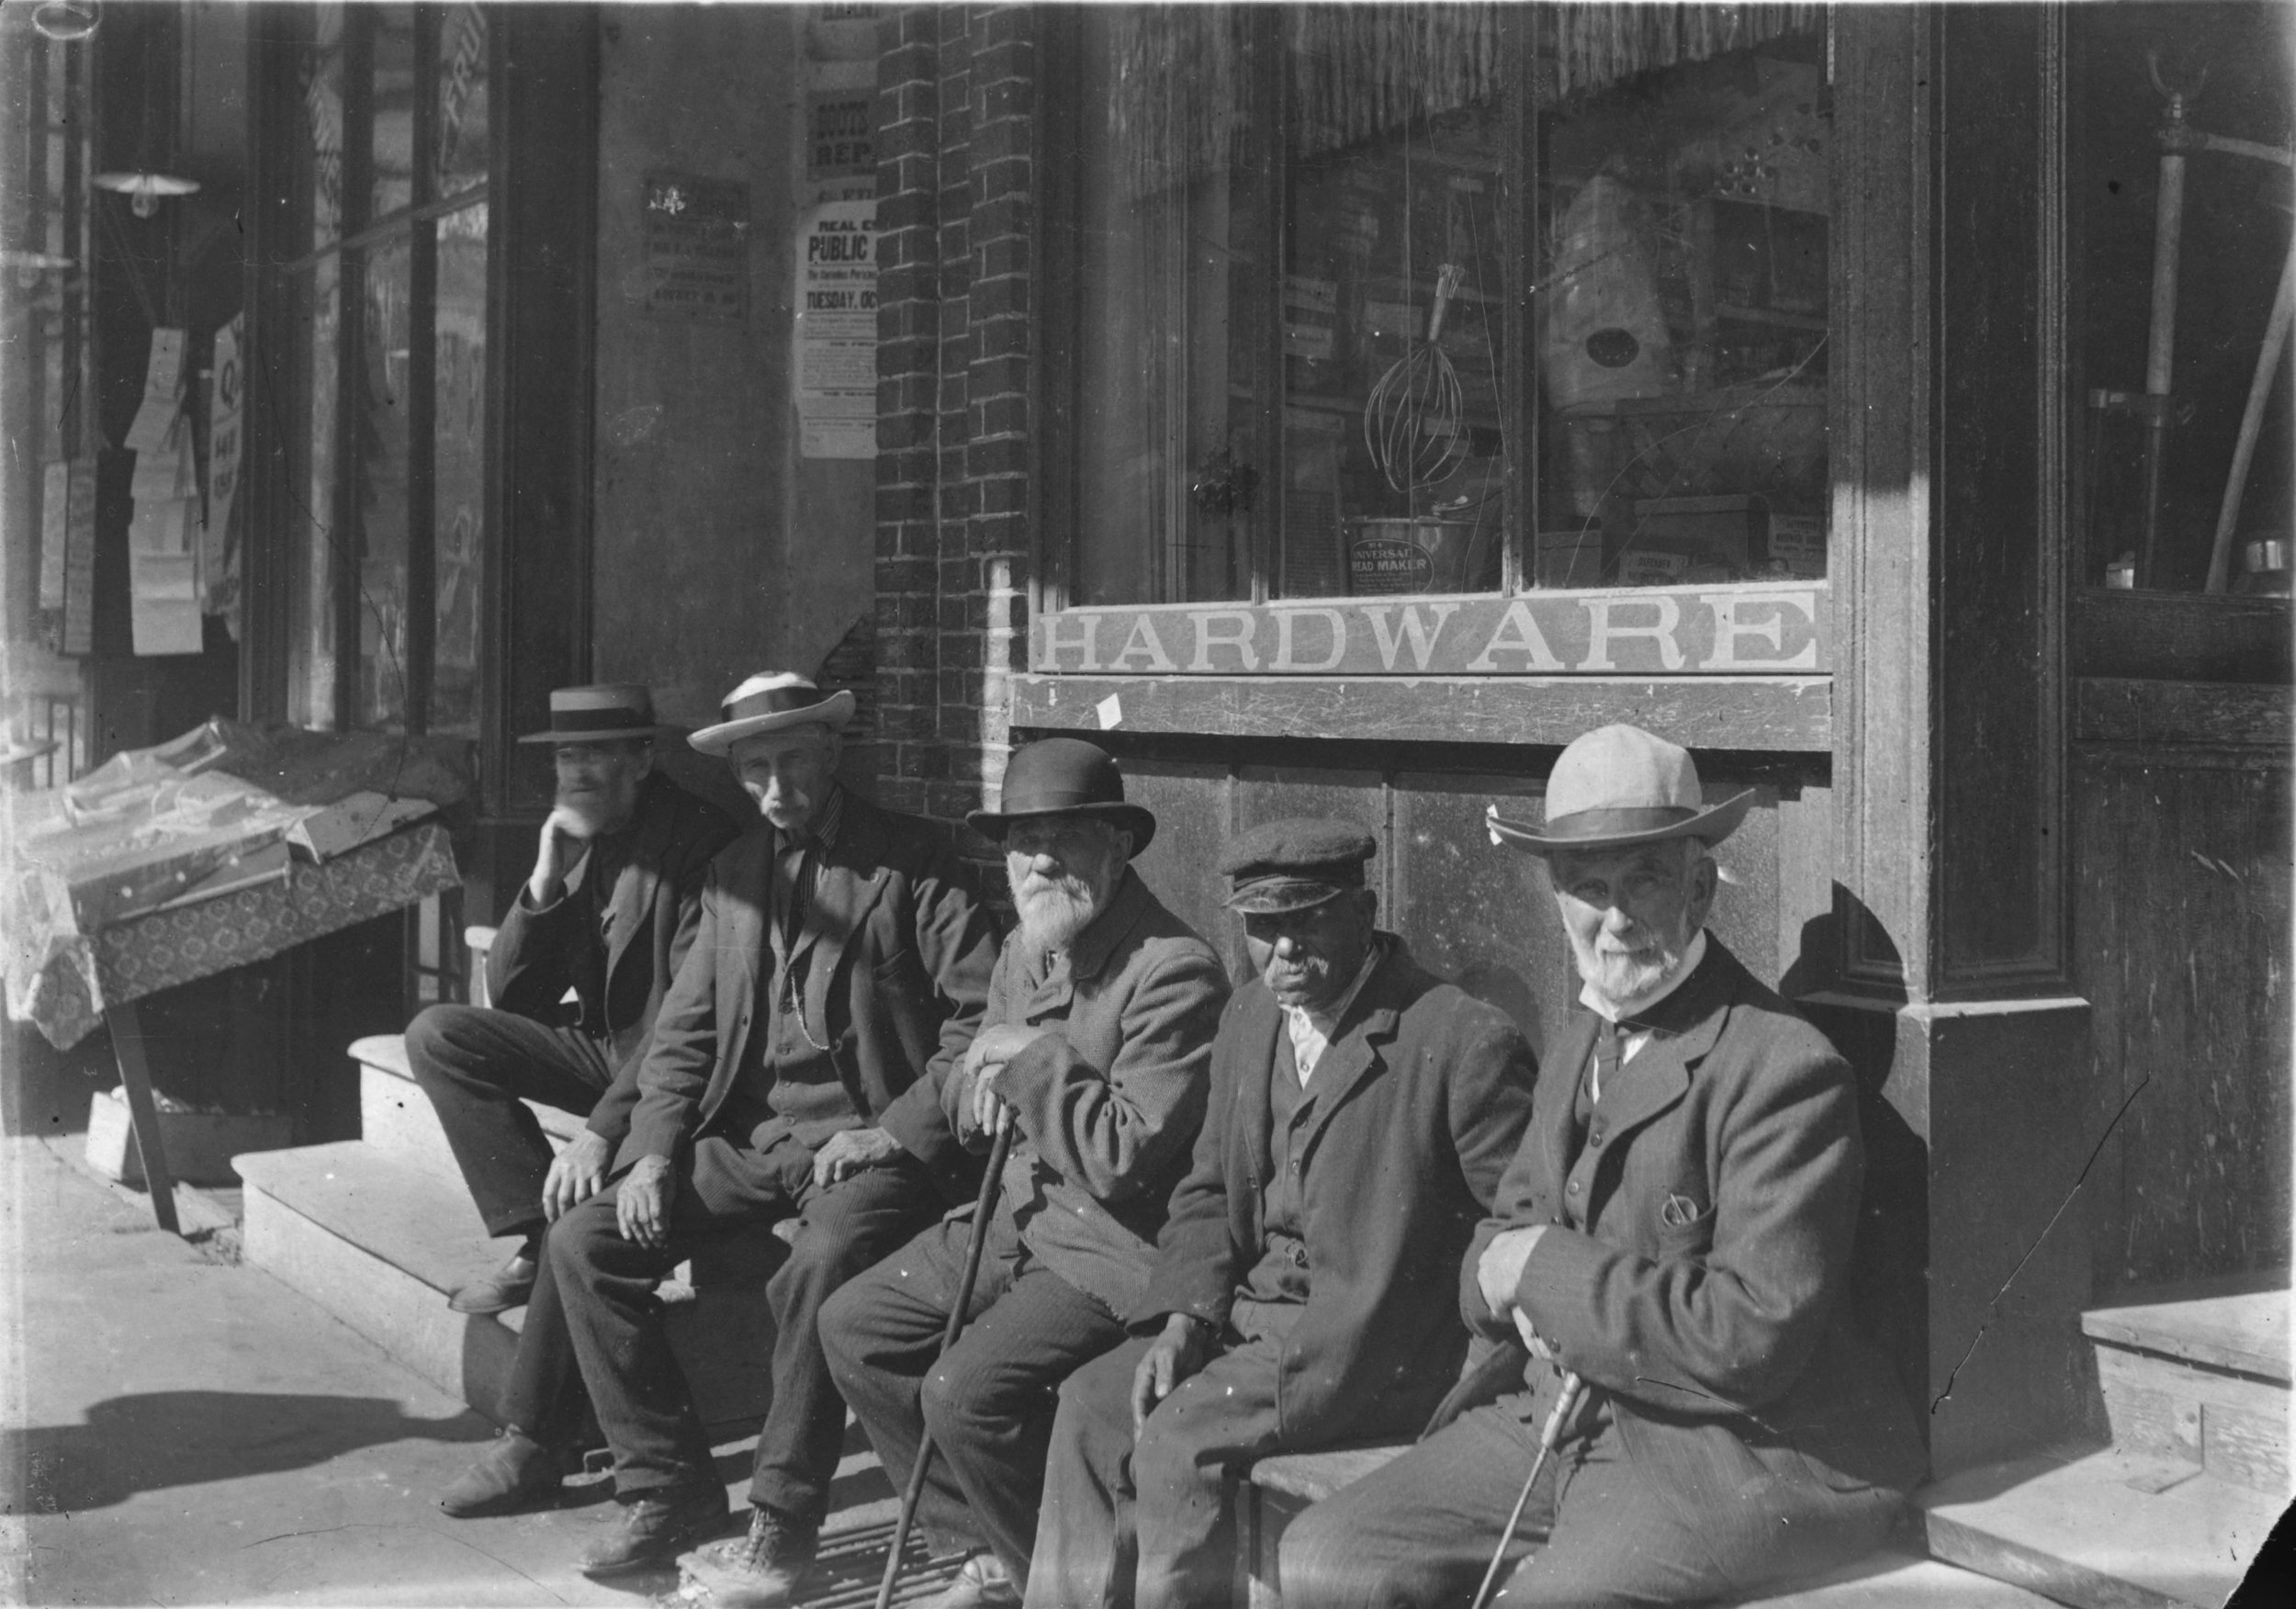 Civil War Veterans - George was a member of the George C. Randall Post #82 G.A.R. (Grand Army of the Republic) which was located on Central Street. The photograph shows members of the G.A.R. seated outside a shop on Central Street.